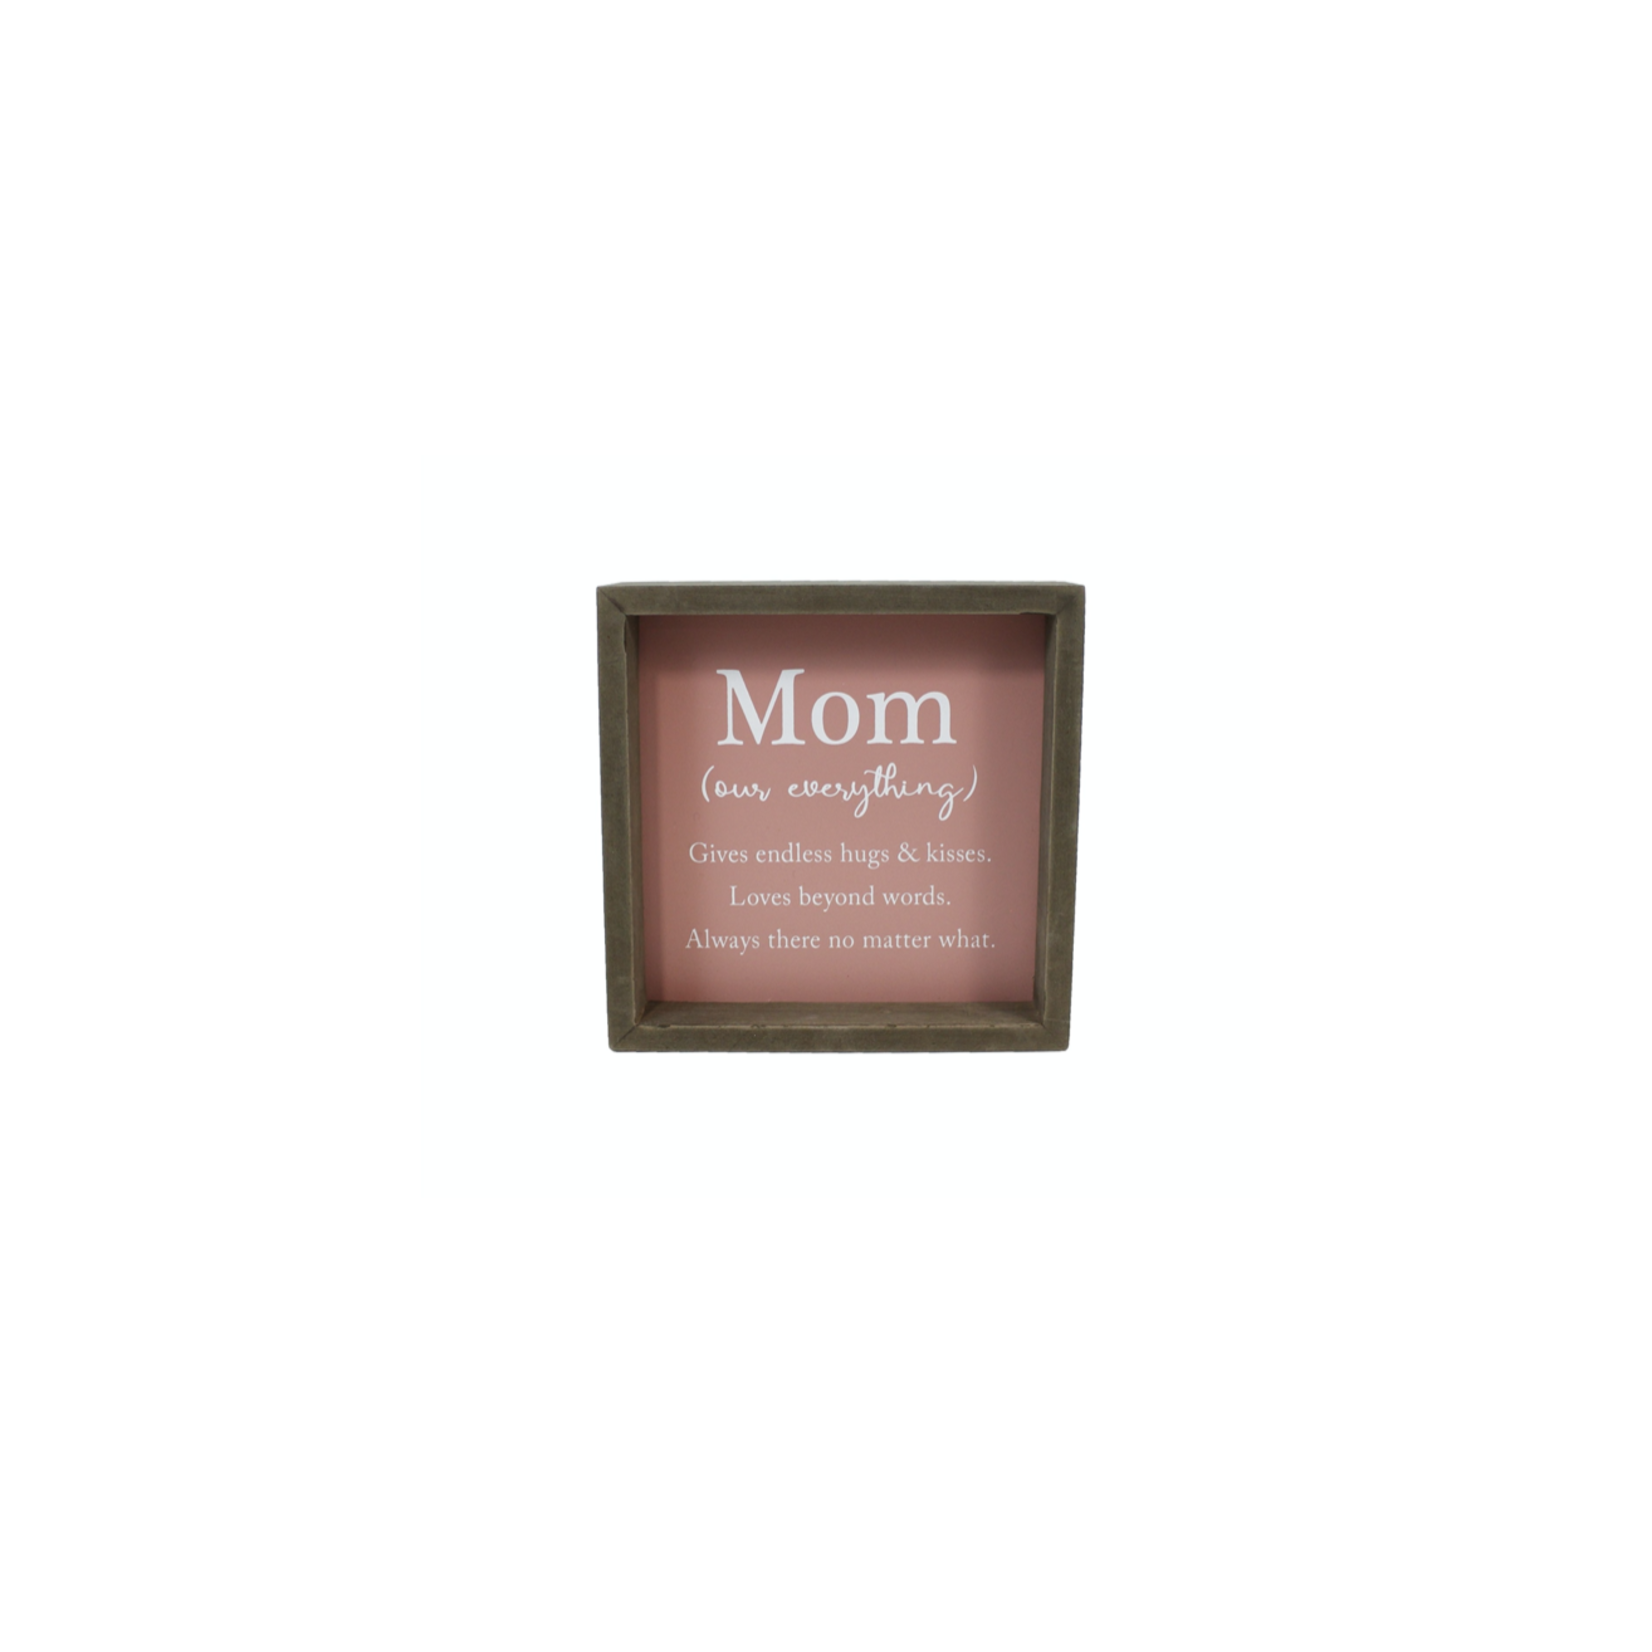 MOM OUR EVERYTHING SIGN